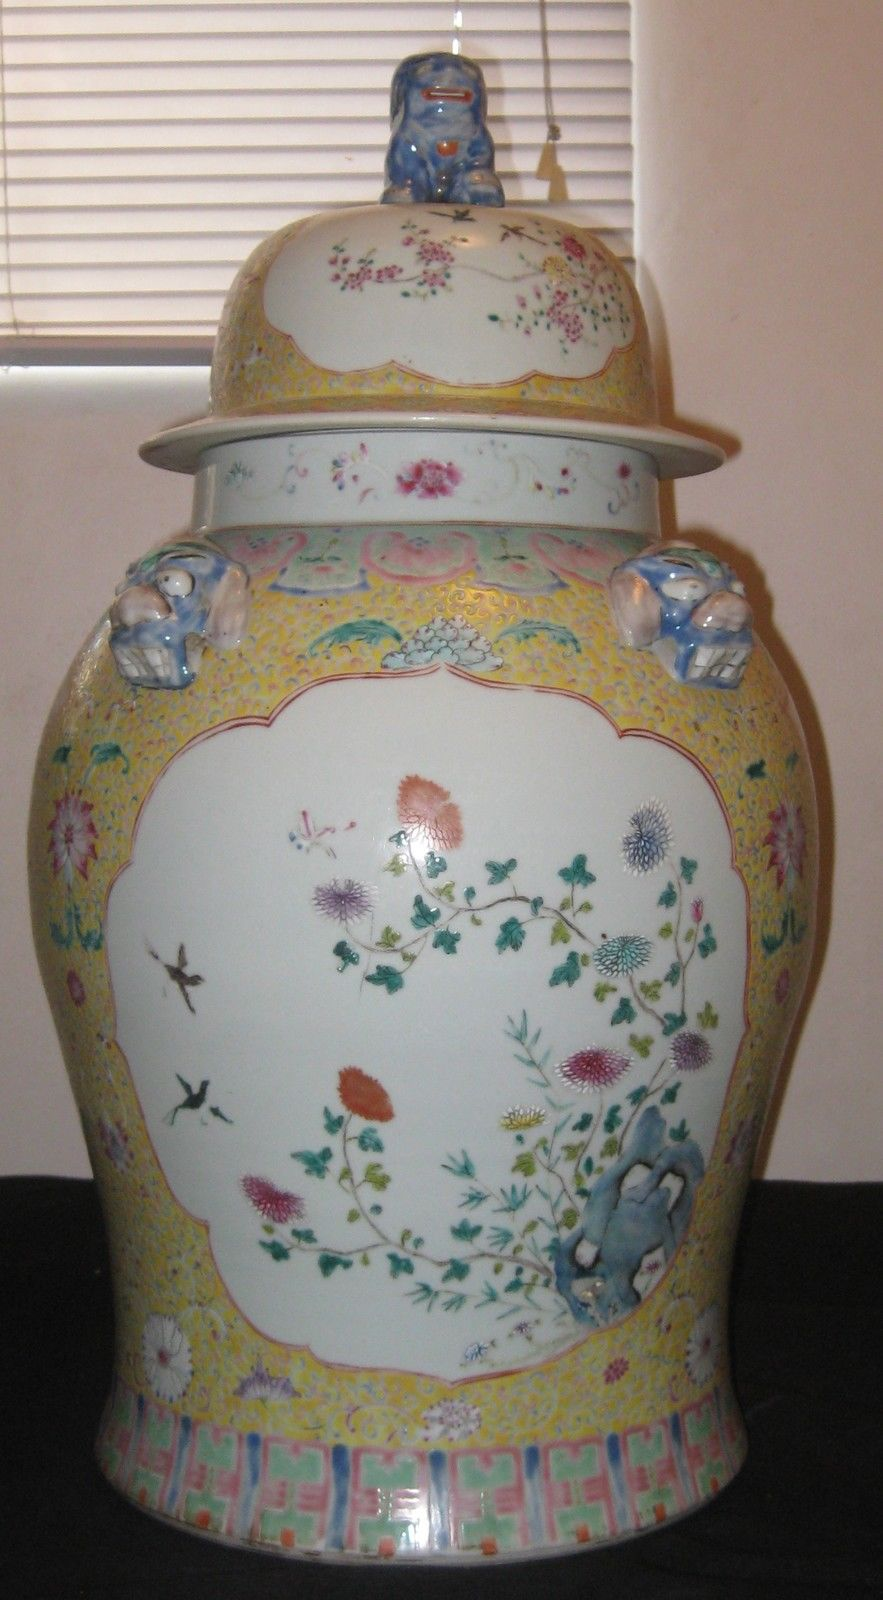 Antique Rare Huge Chinese Polychrome Hand Painting Porcelain Vase,19th Century.